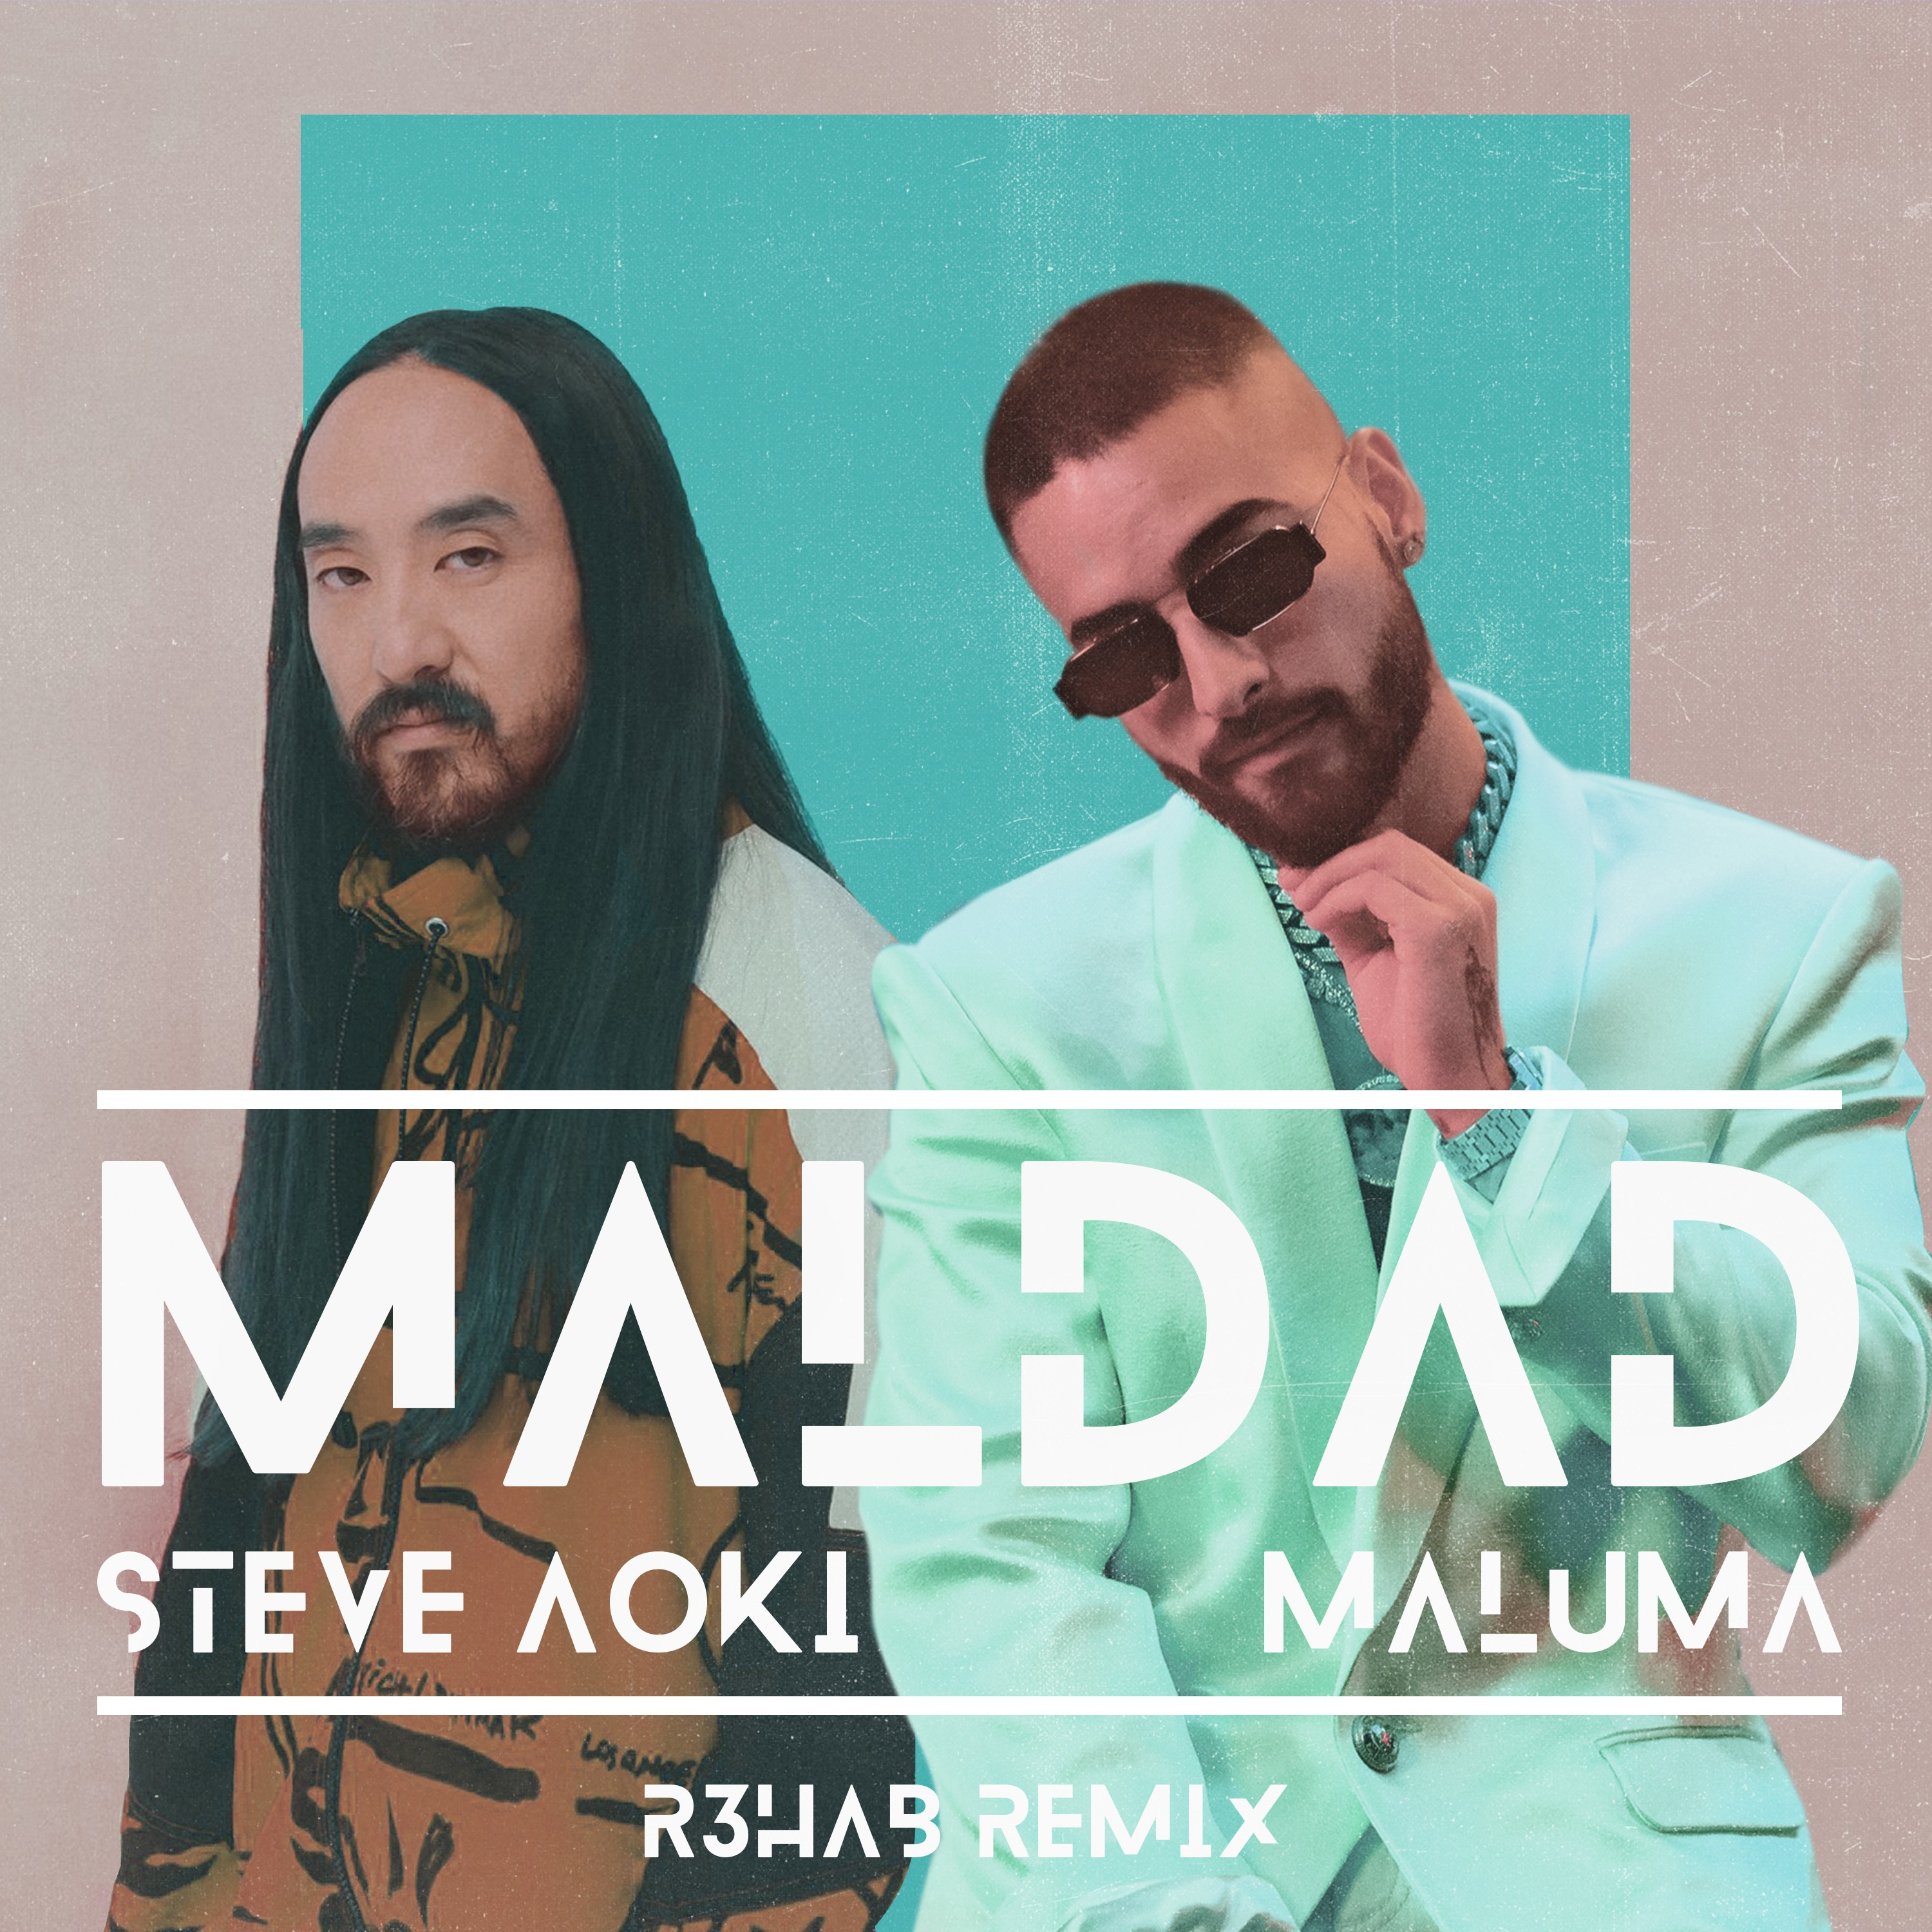 'Maldad' is out now!